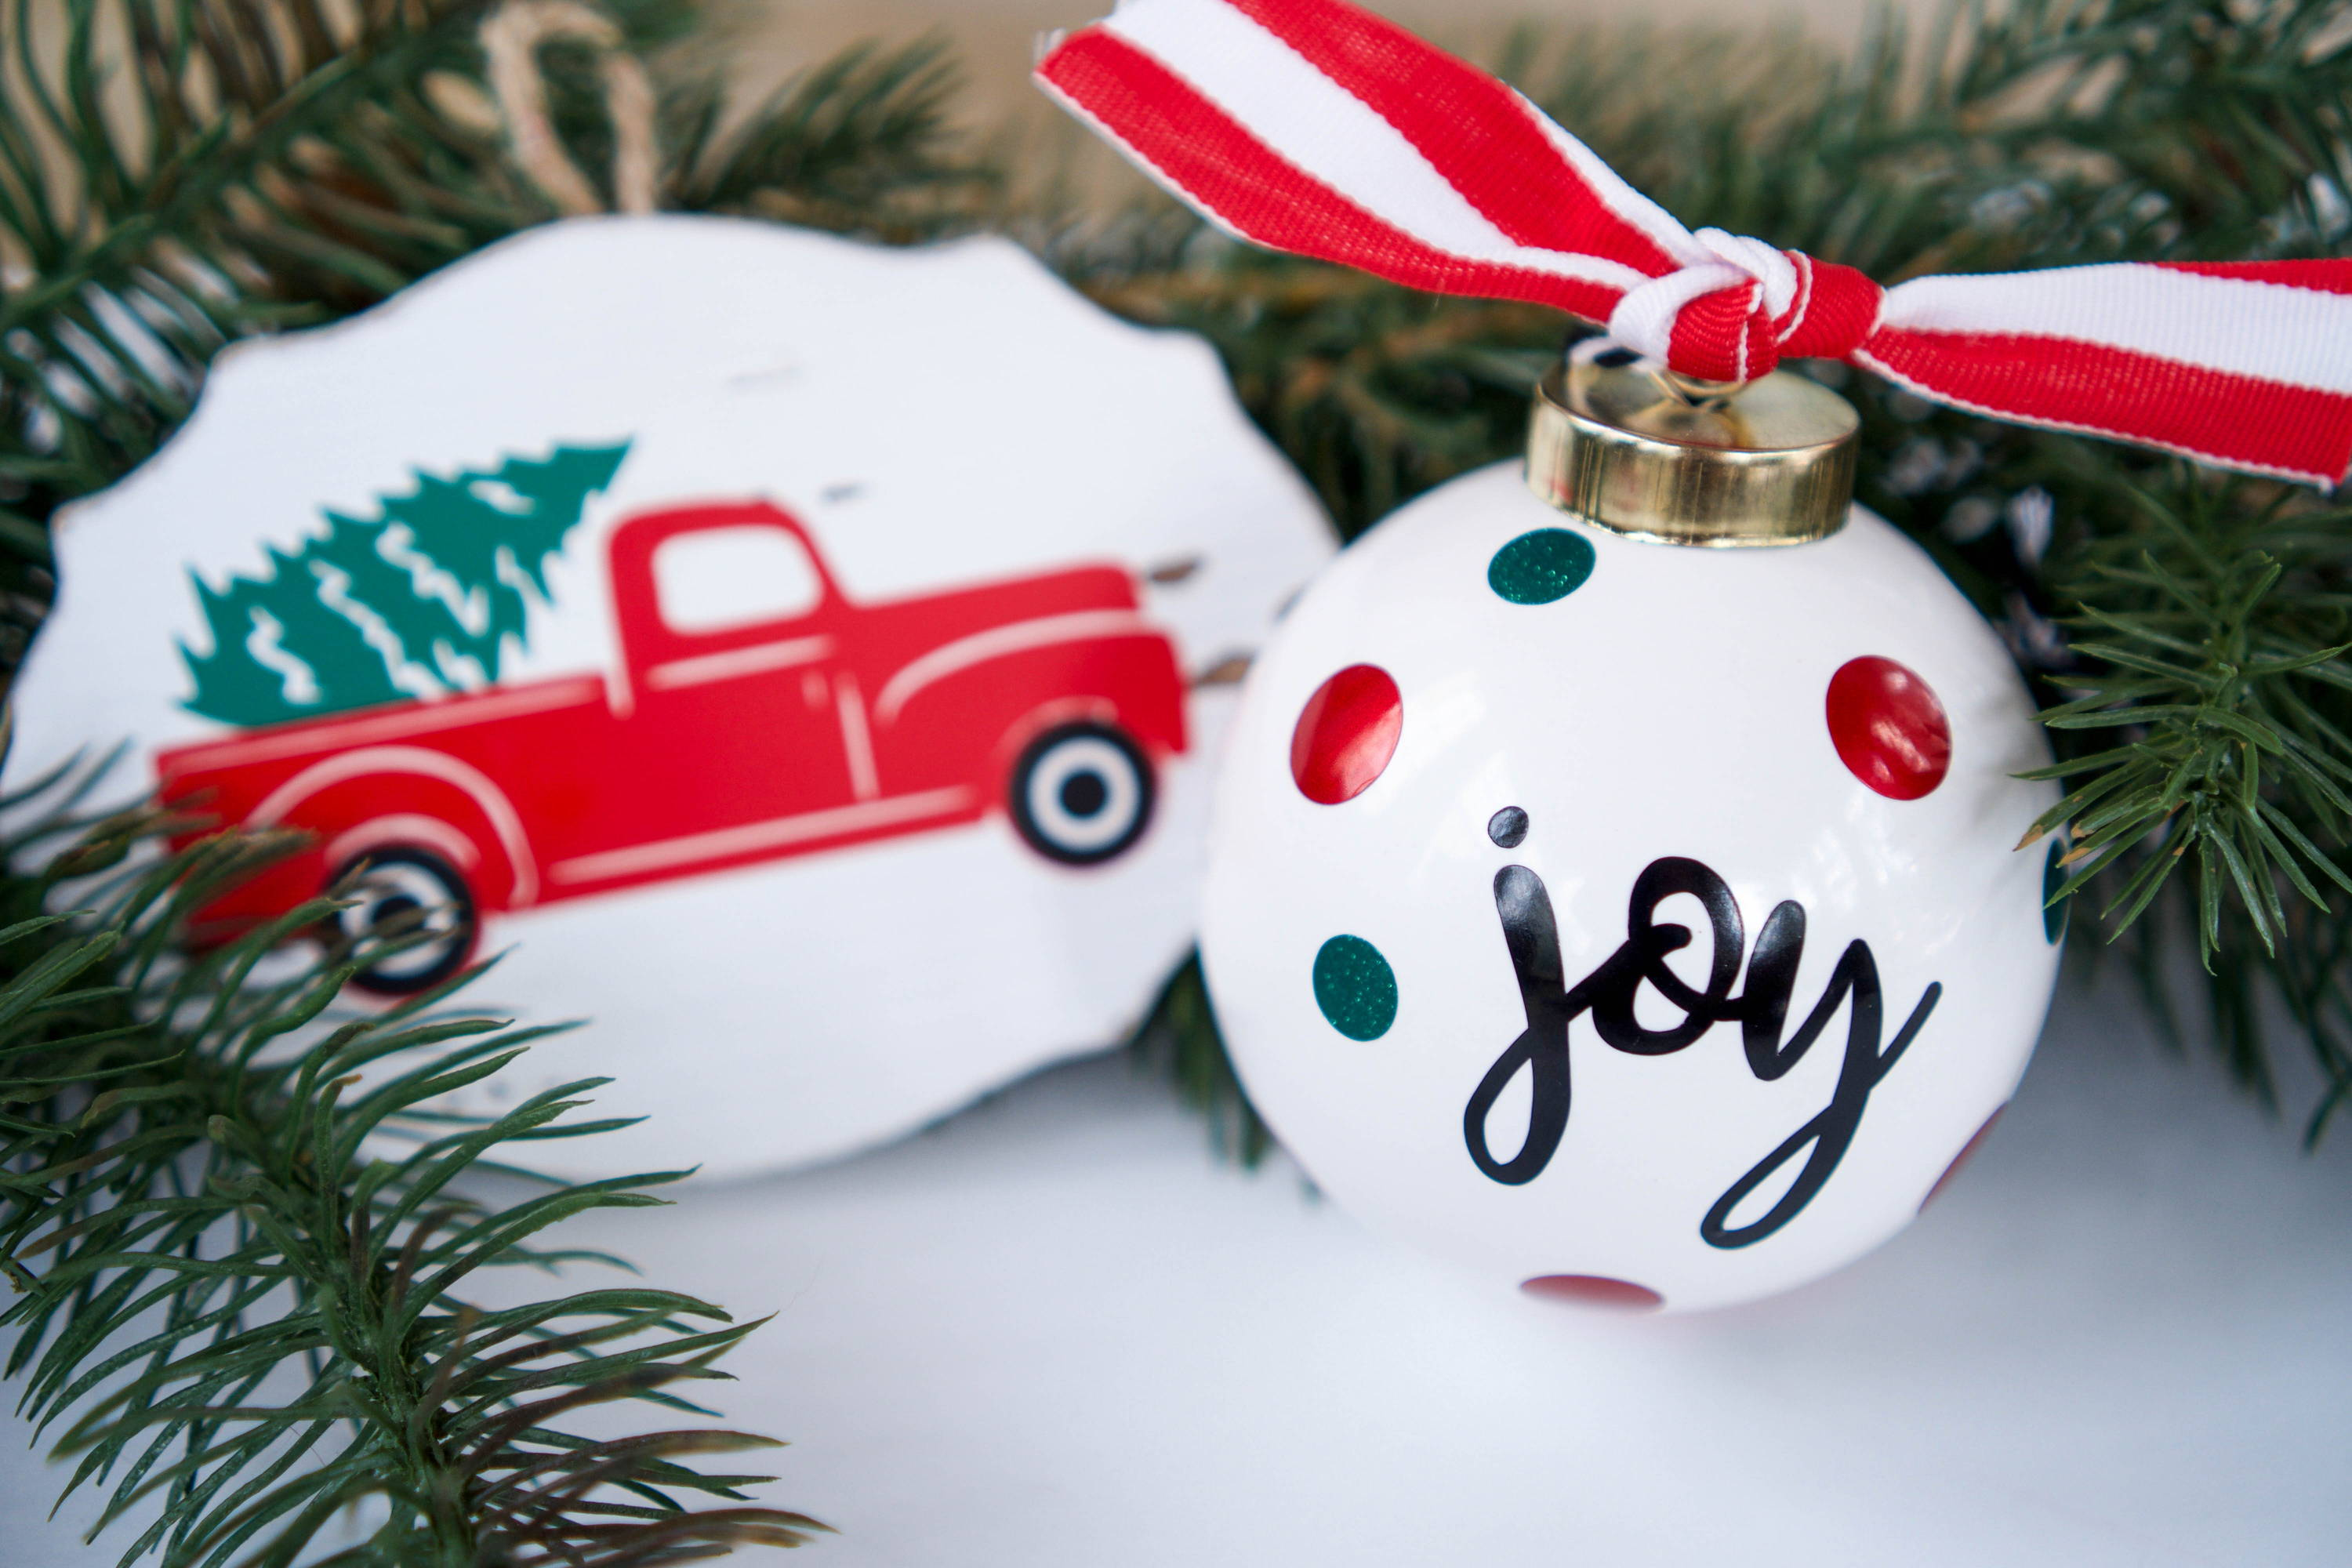 Diy Christmas Ornament Ideas Heat Transfer Vinyl On Wood